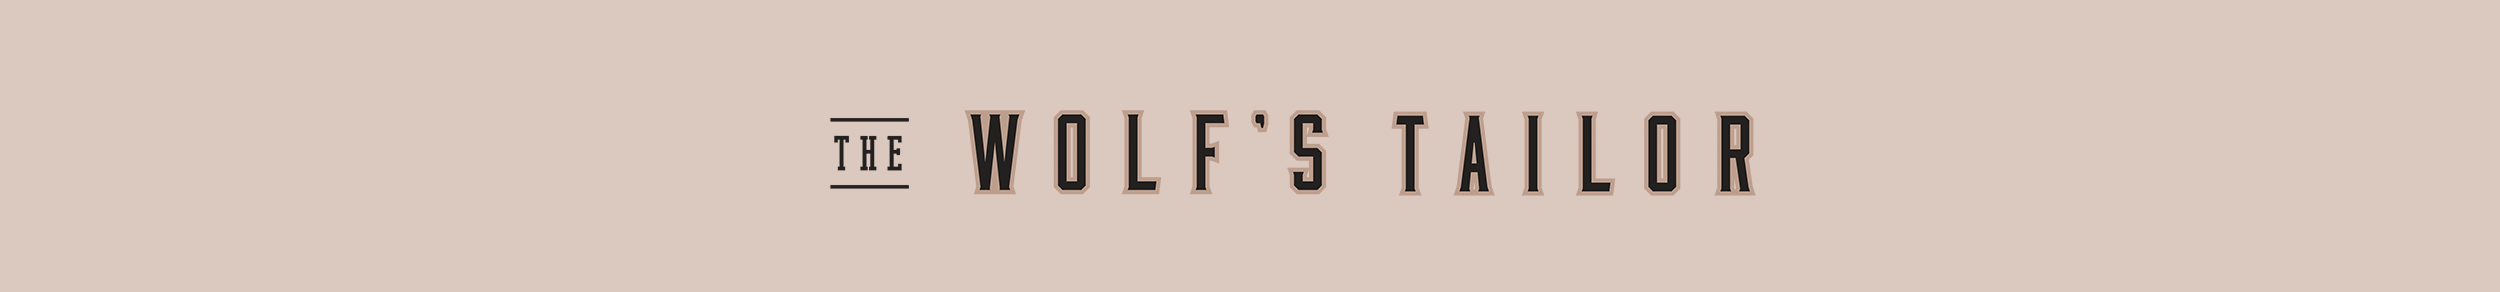 The Wolf's Tailor Horizontal Brand Mark